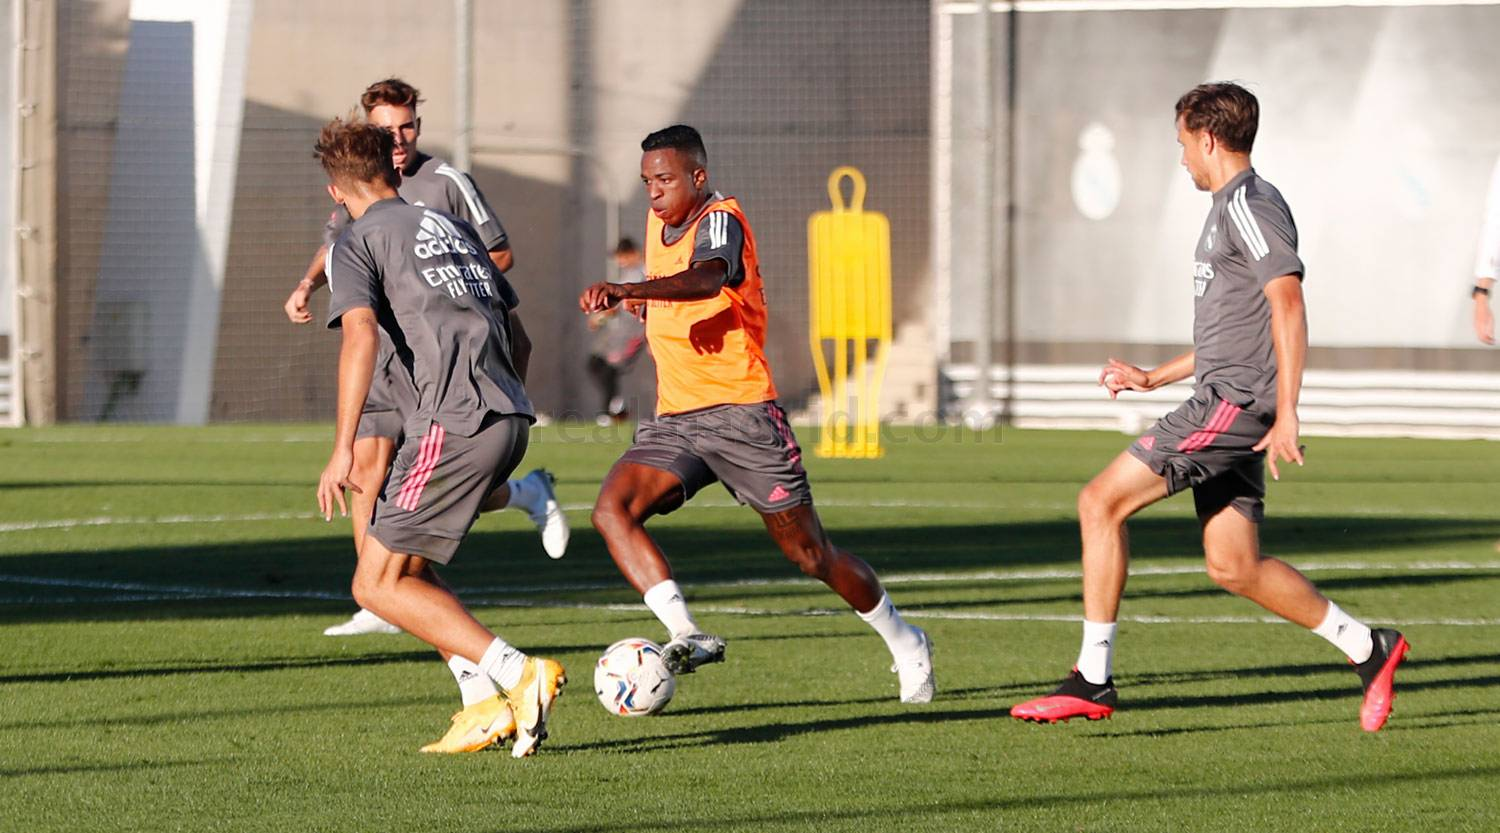 Real Madrid - Entrenamiento del Real Madrid  - 12-10-2020